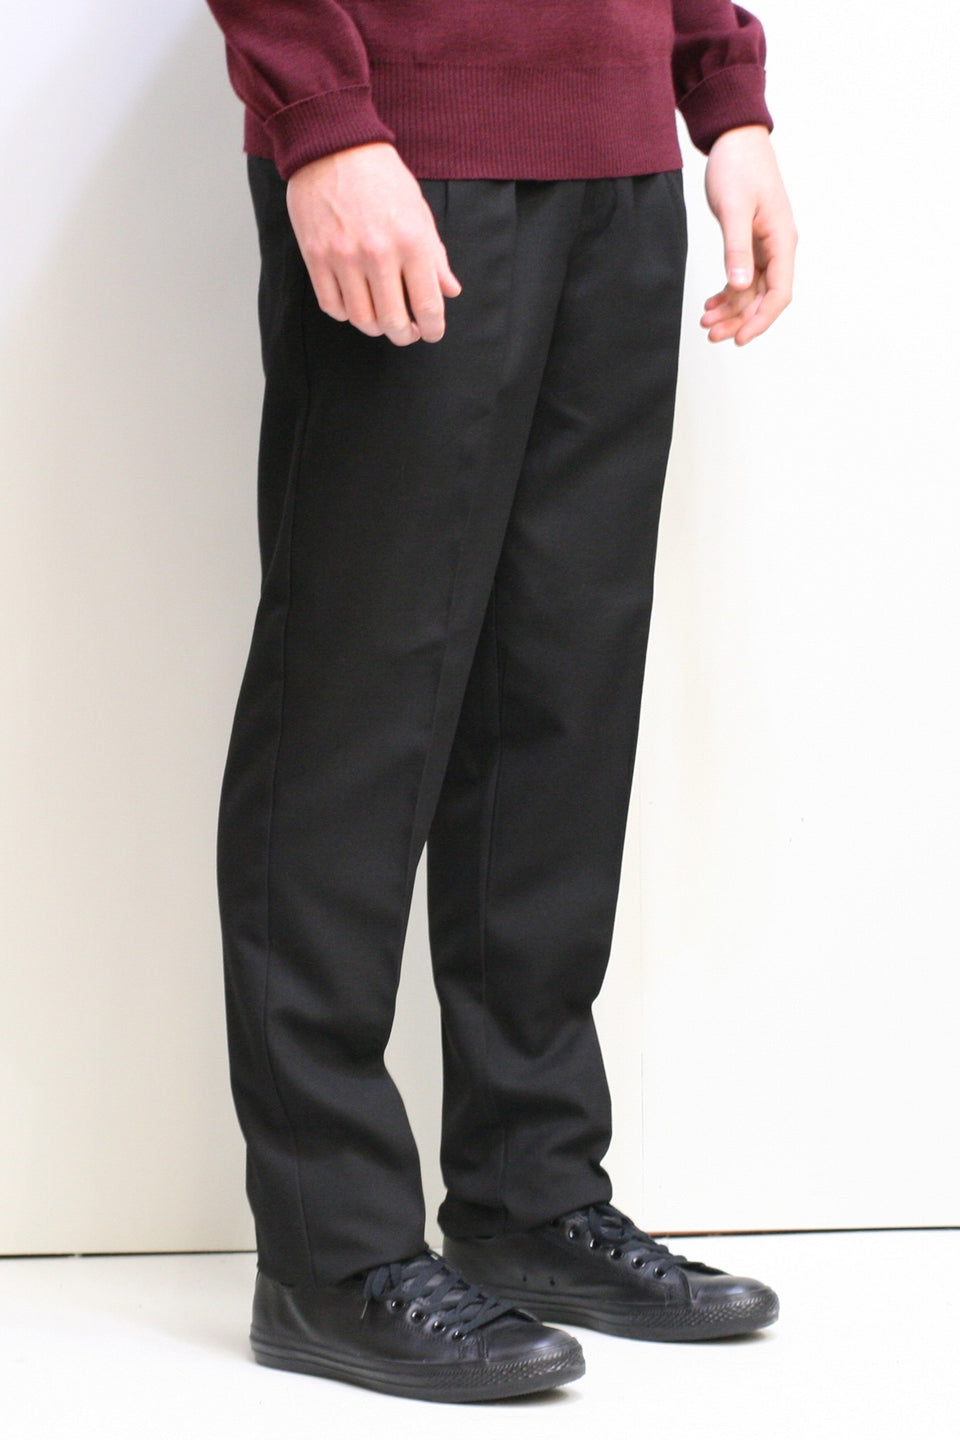 Senior Boys Trouser